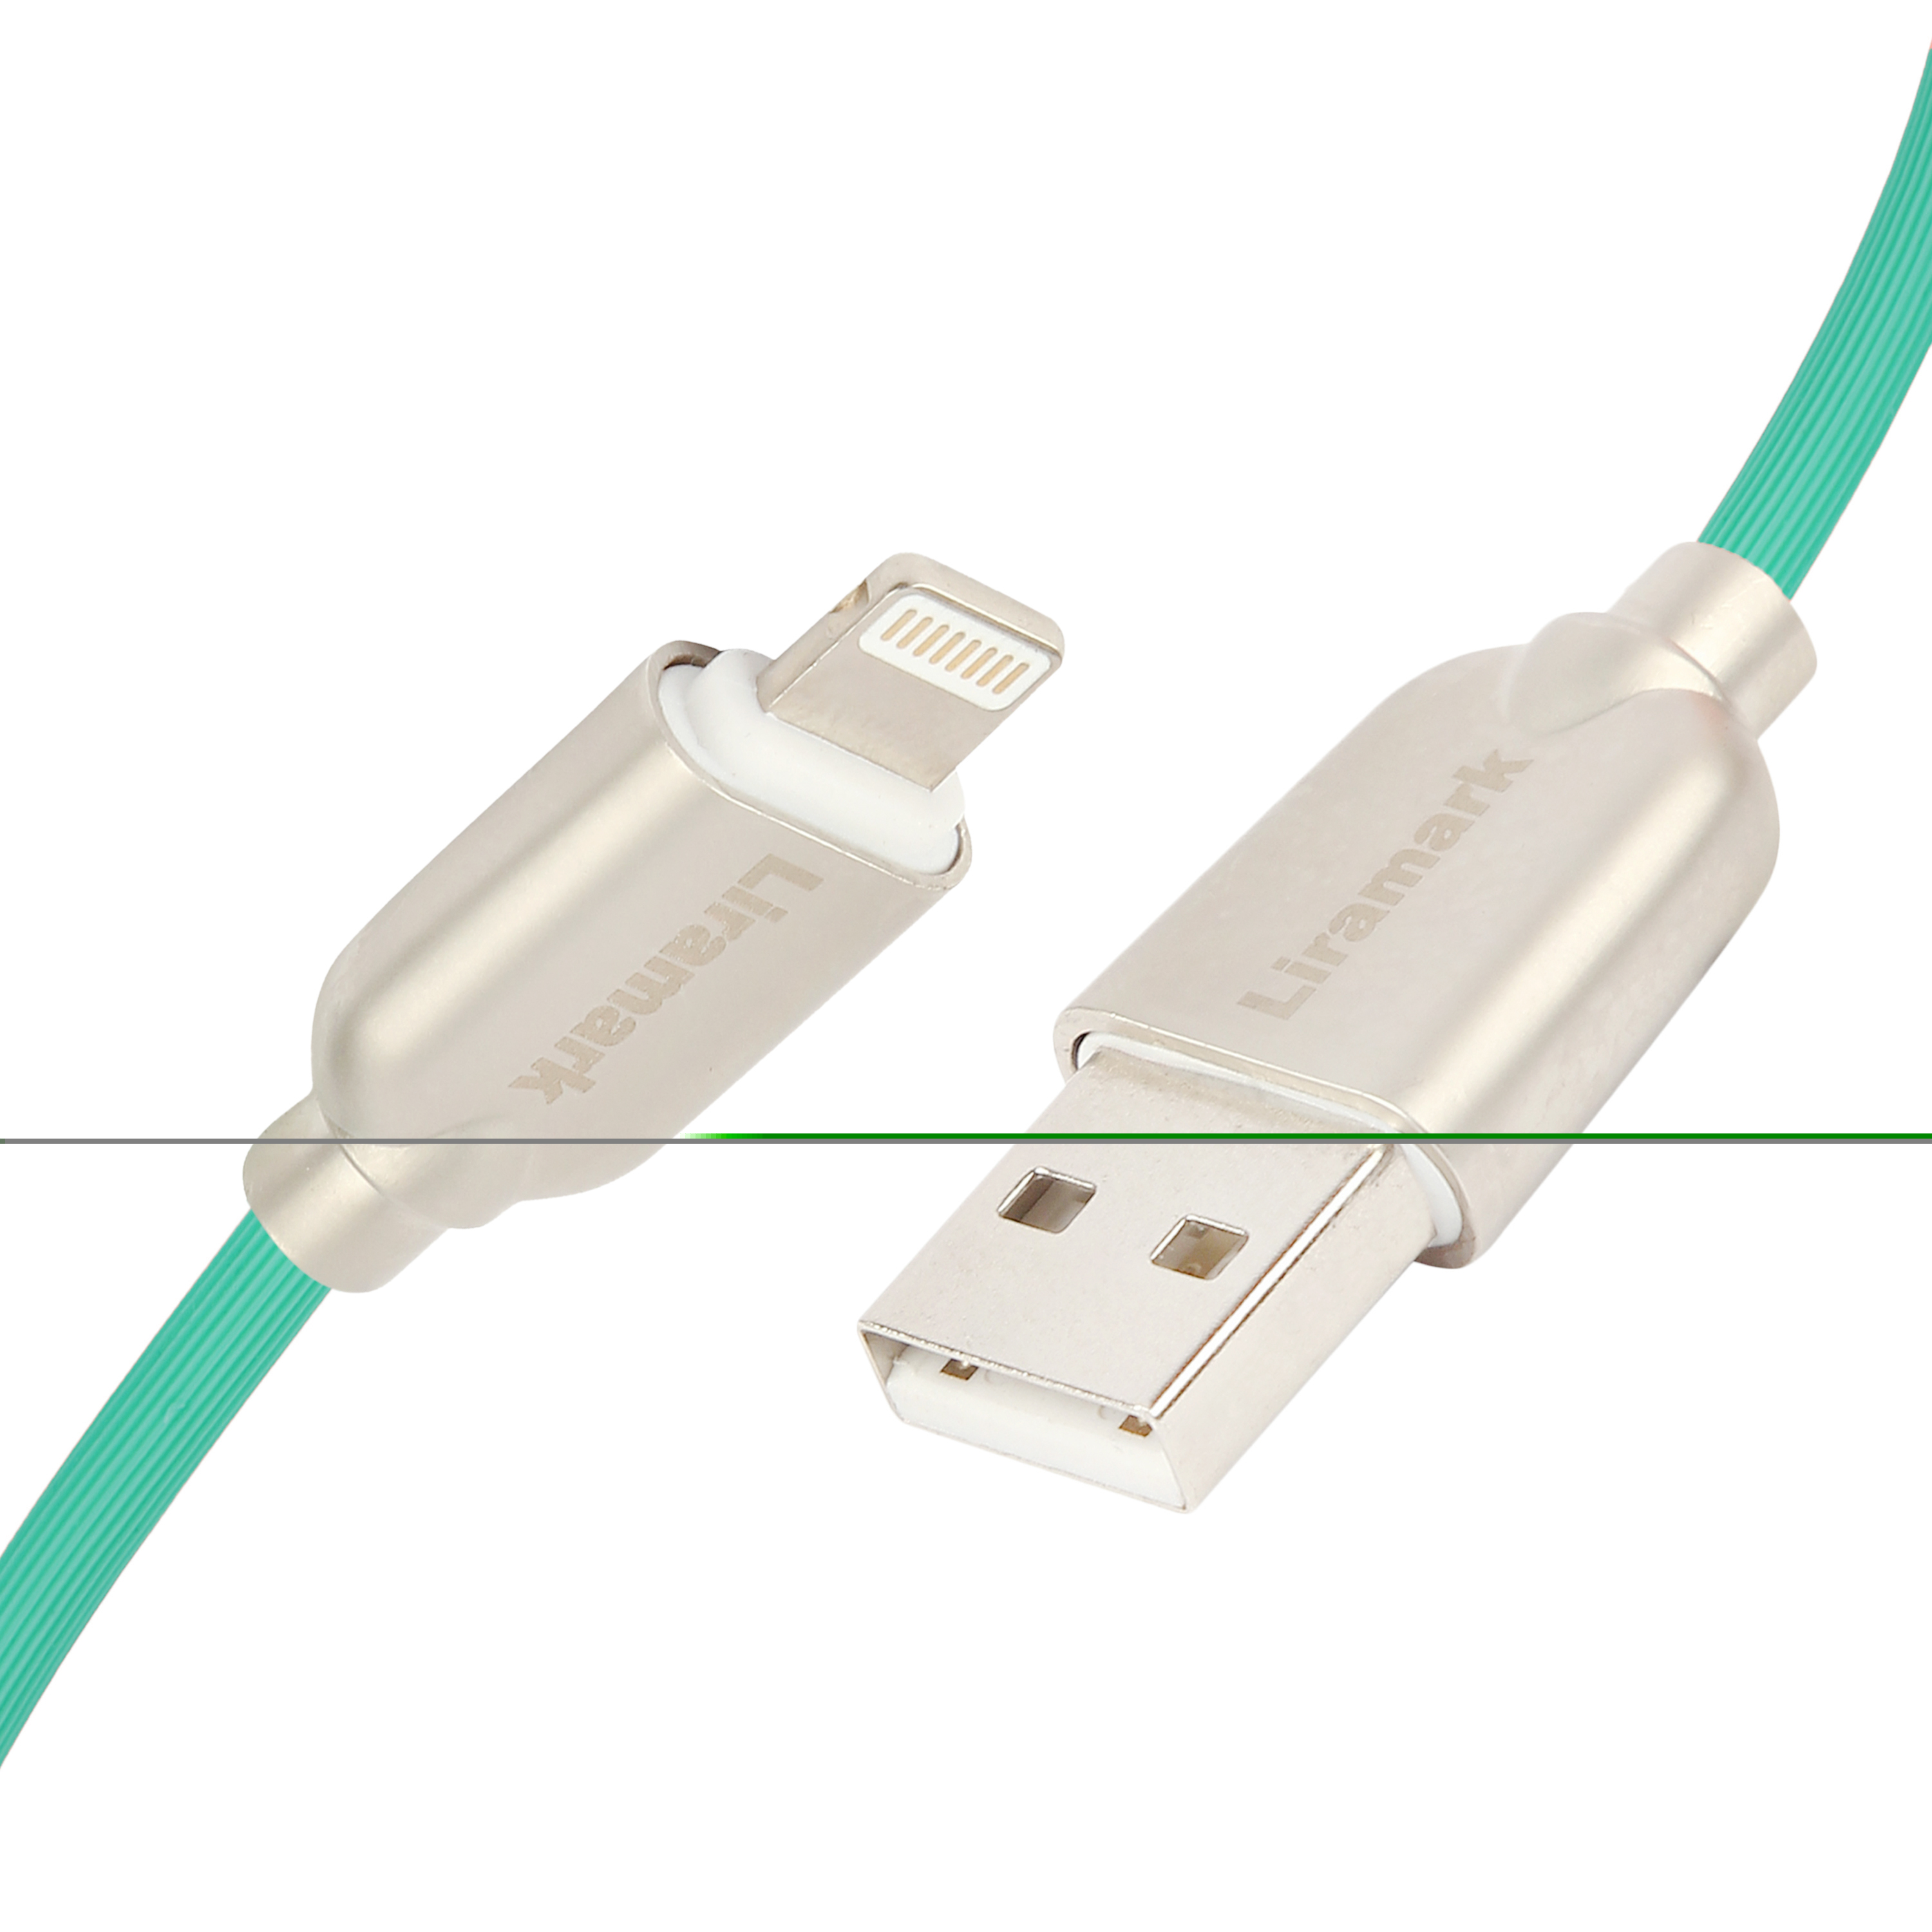 LIRAMARK 2m (6ft) Long Tough (Data/Charging) lightning Cable with Super Fast Charging up to 2.4Amps for Apple iPhone, iPad, iOS